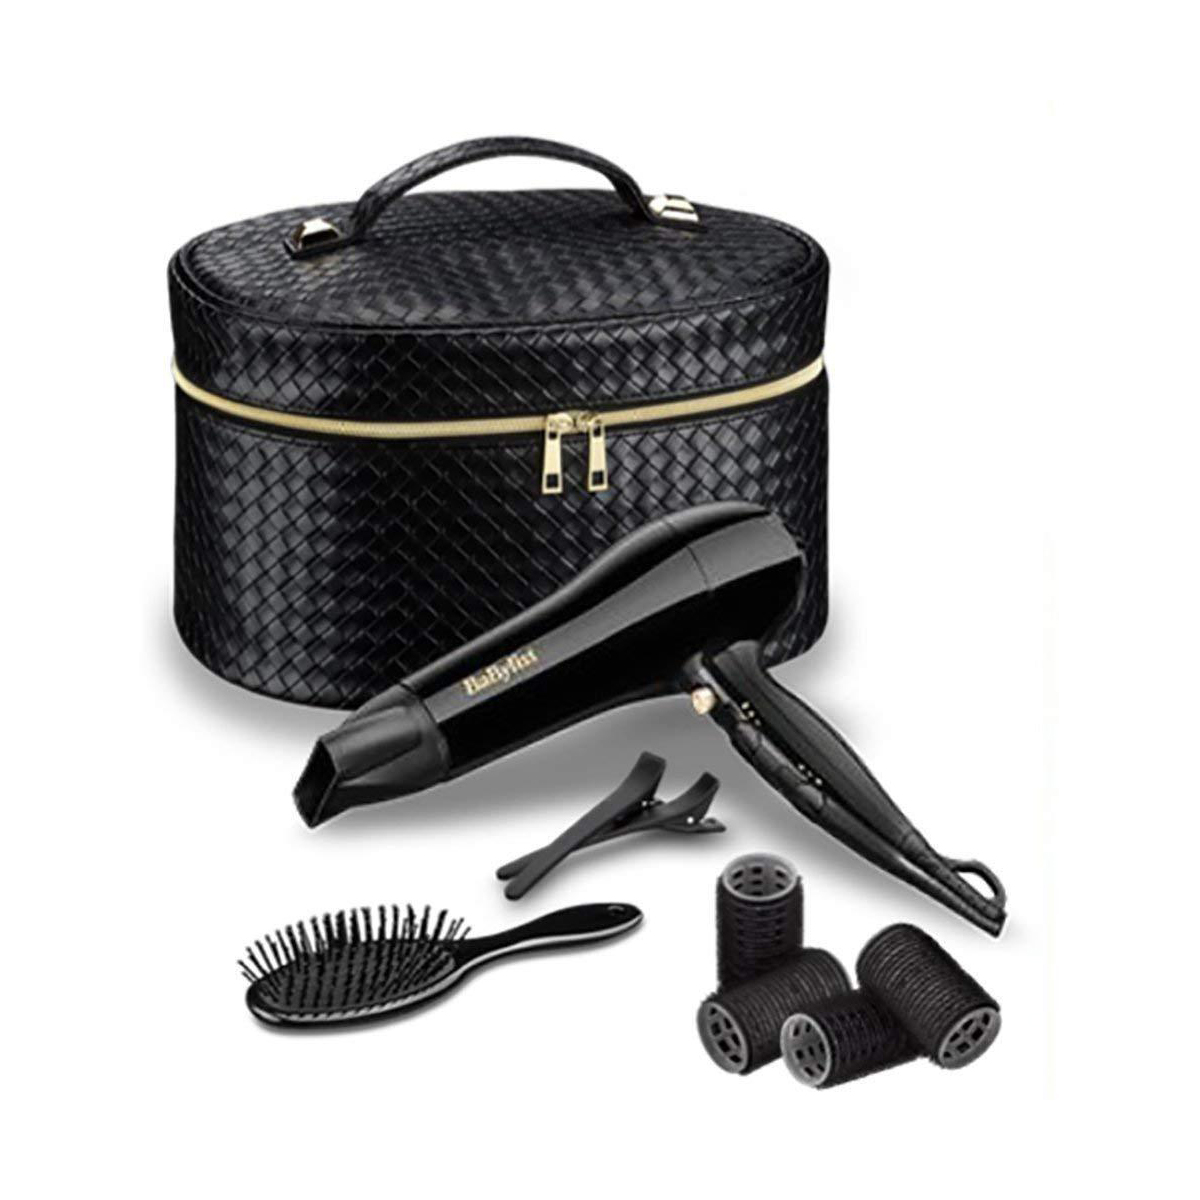 BABYLISS MOTHERS DAY GIFT SET STYLING HAIR DRYER ACCESSORY /& VANITY CASE SHH5737